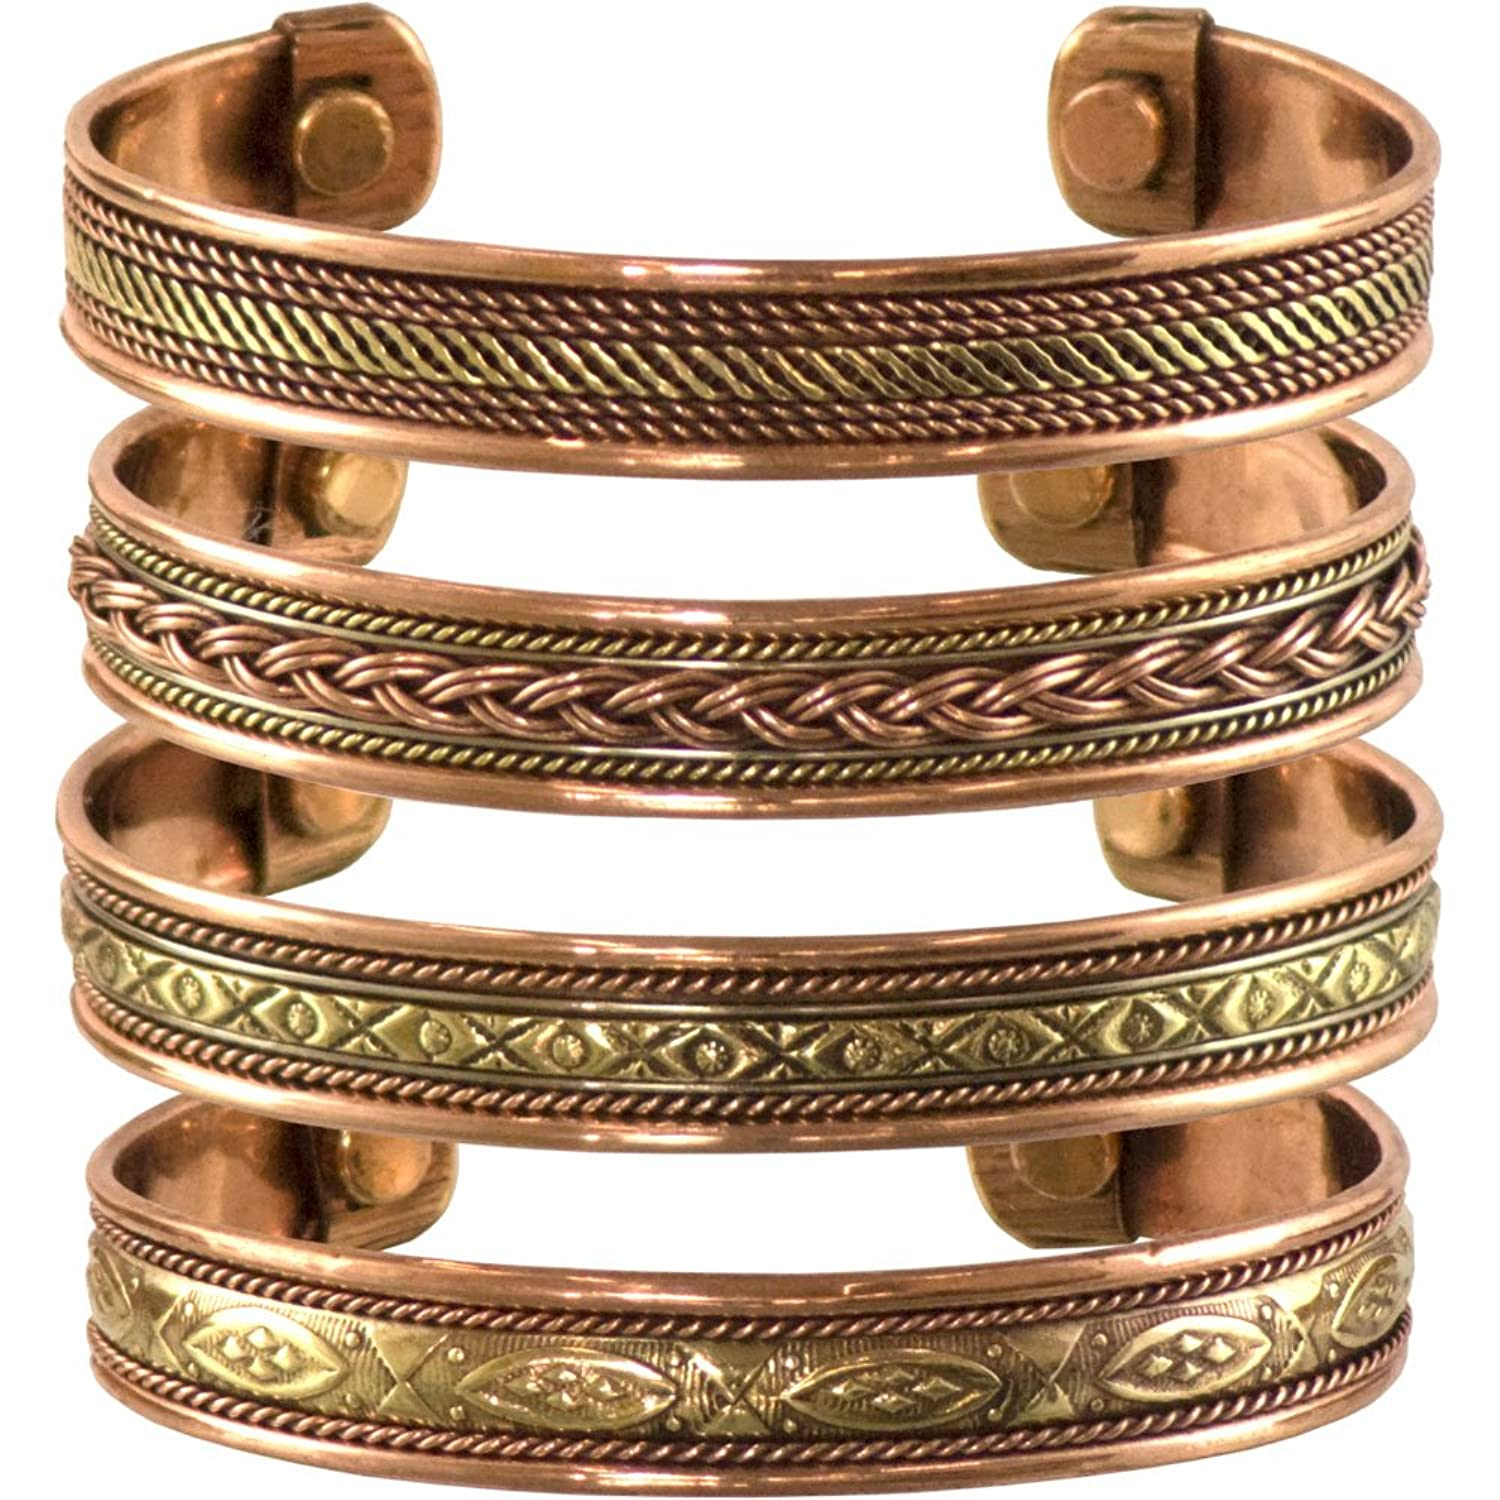 Bundle offer 18k gold plated amp white gold plated necklace 2 ring - Set Of 4 Tibetan Copper Bracelets Magnetic India Pattern Women S Men S Spiritual Yoga Jewelry